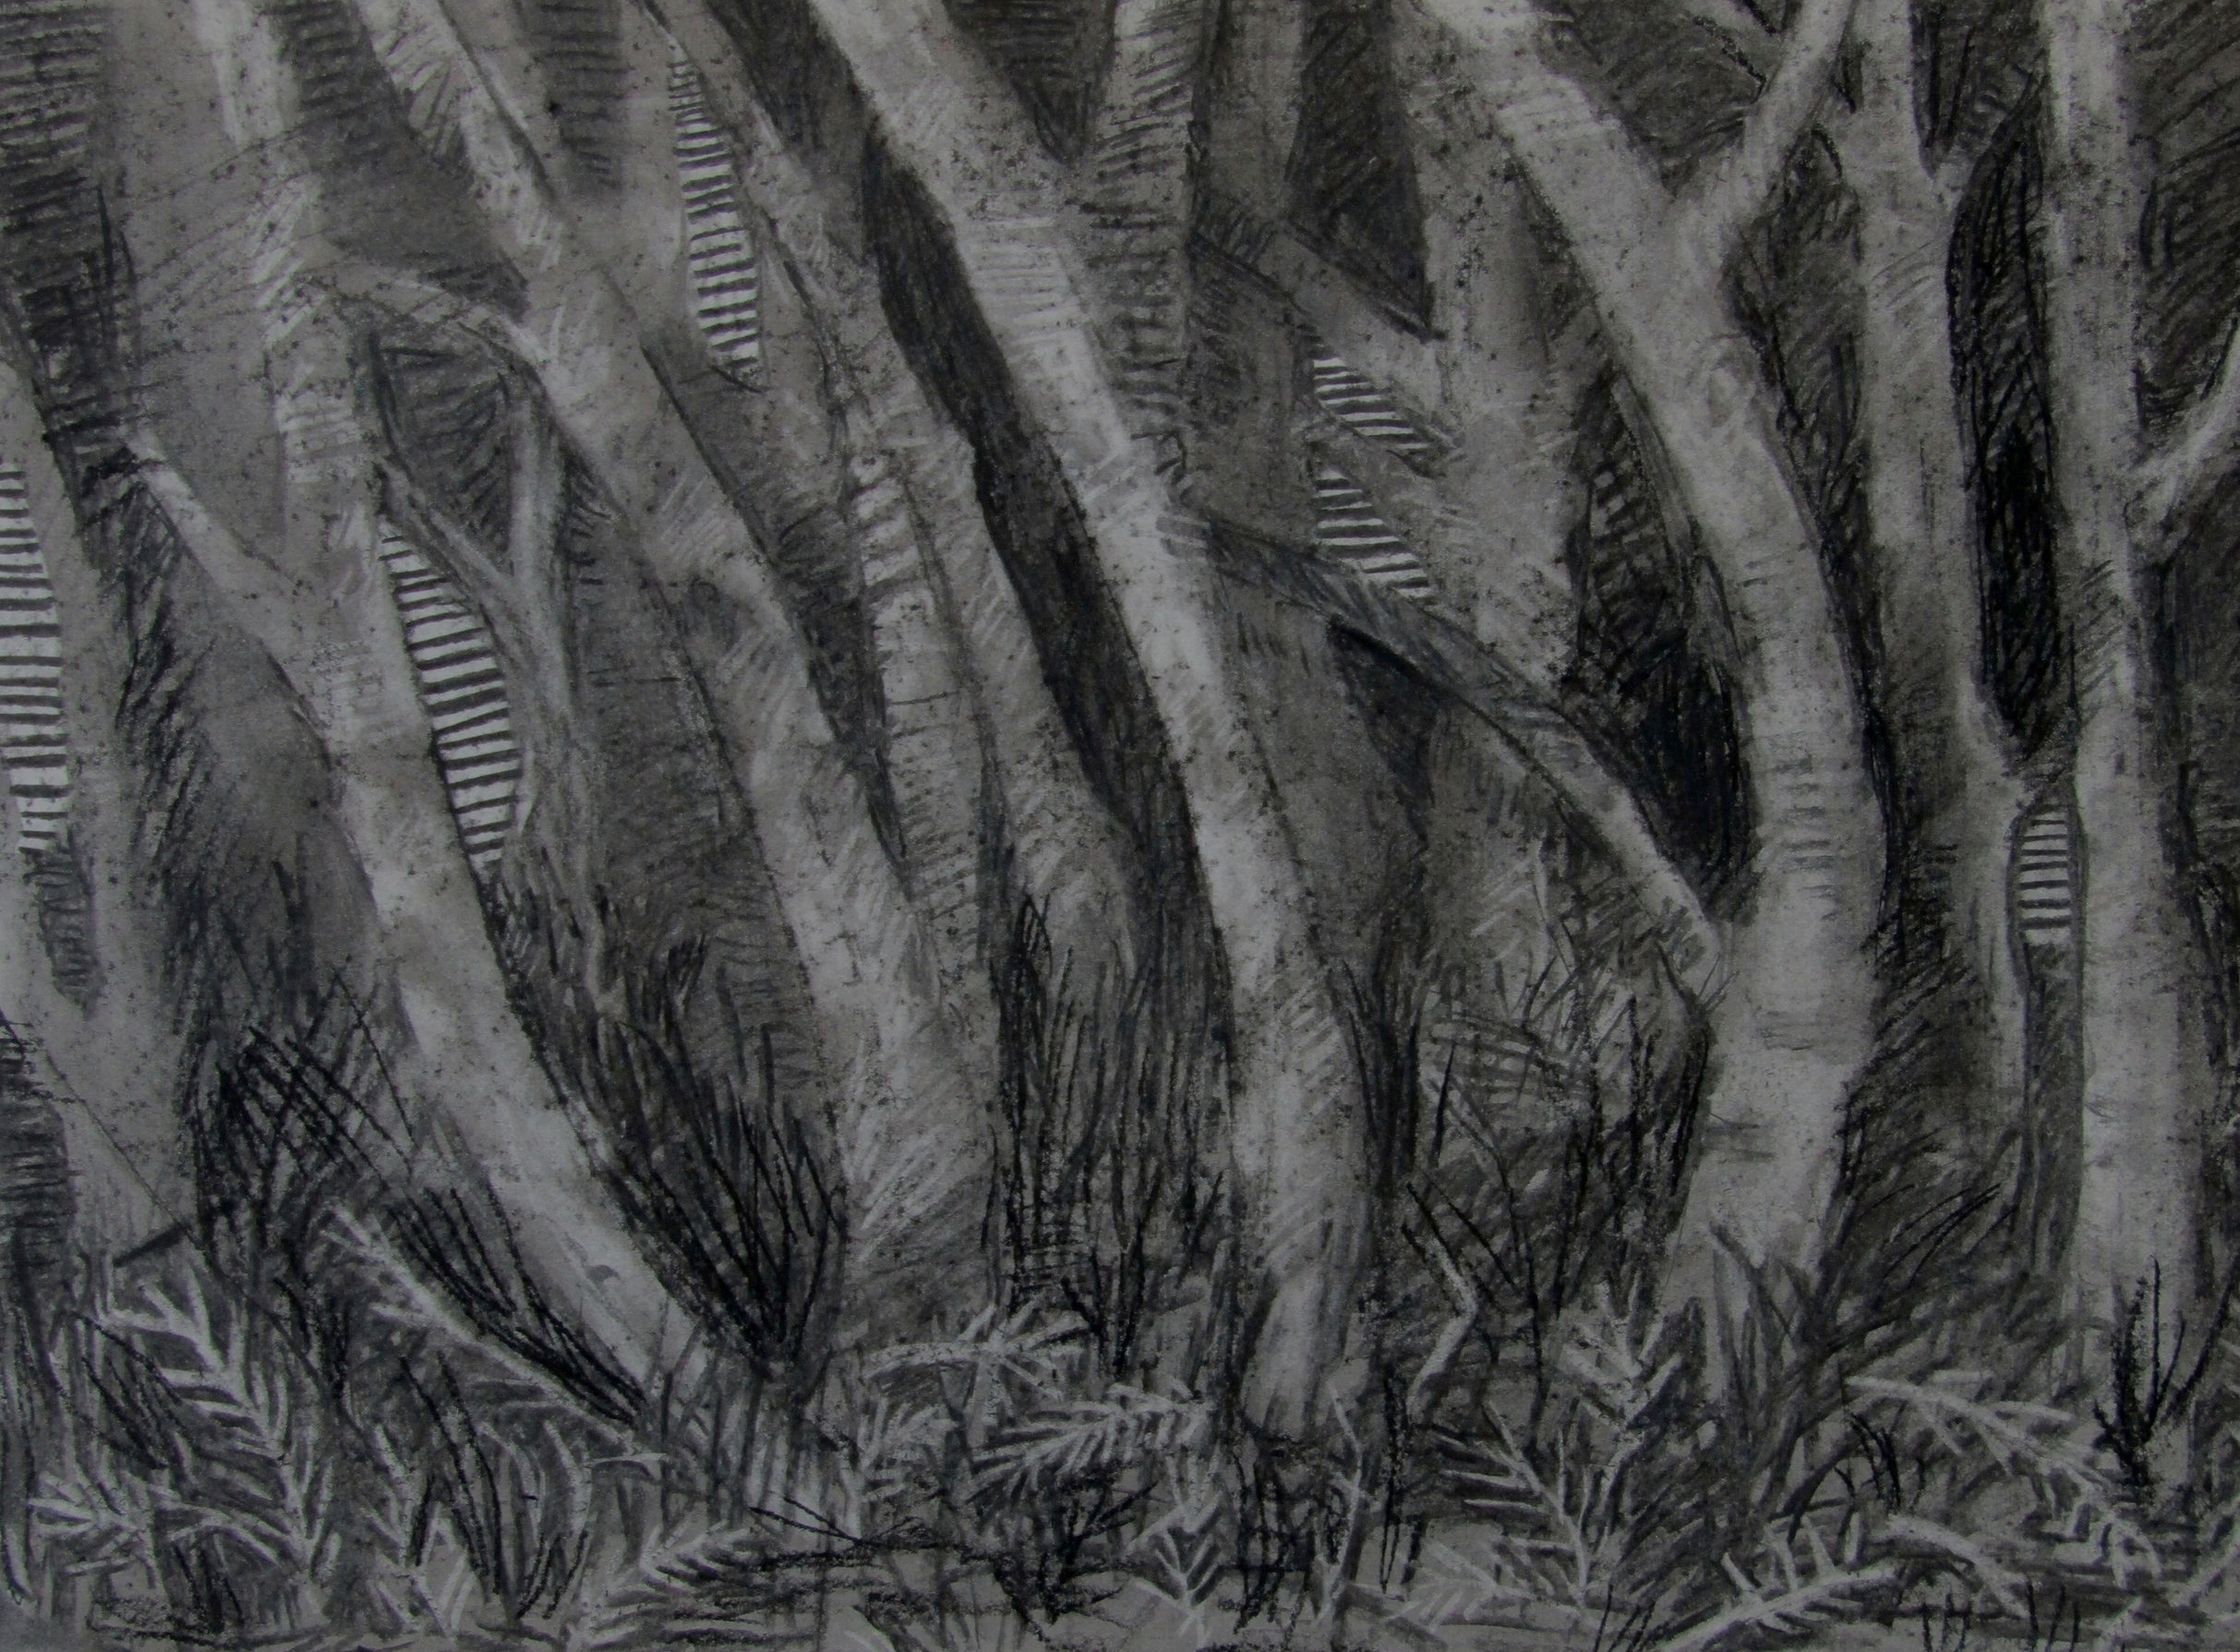 Charcoal on paper  2016, Iceland